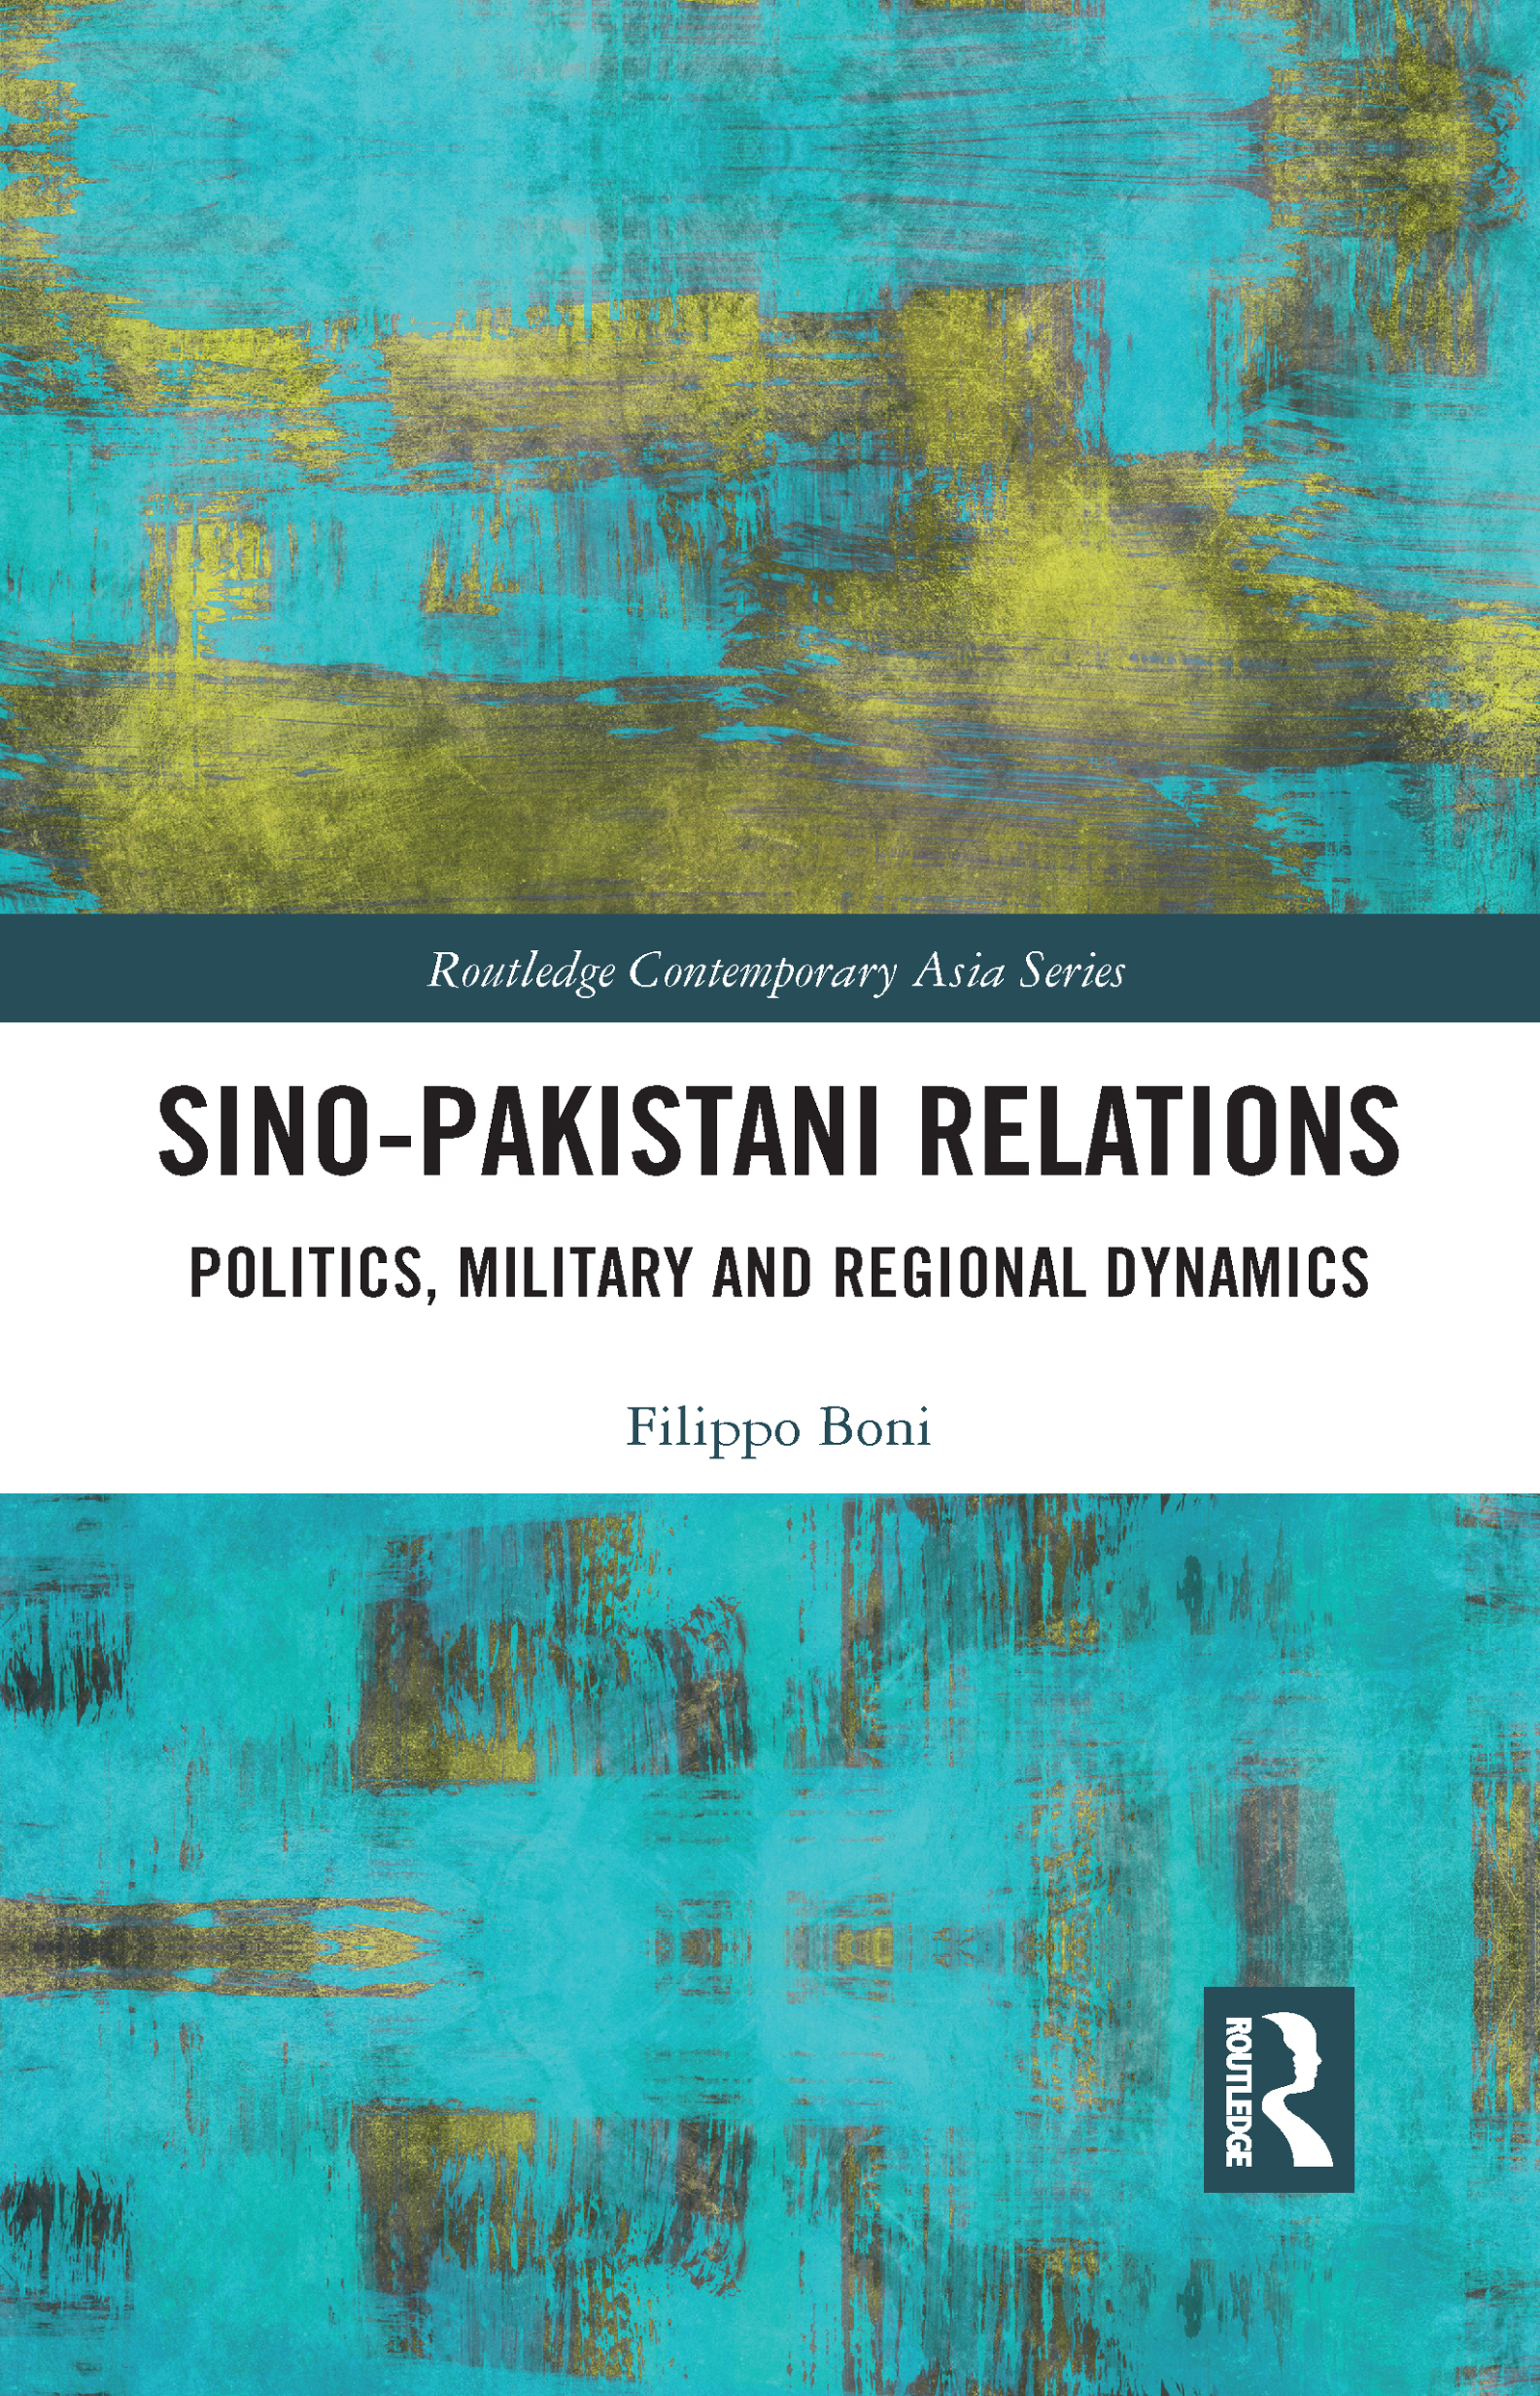 Sino-Pakistani Relations